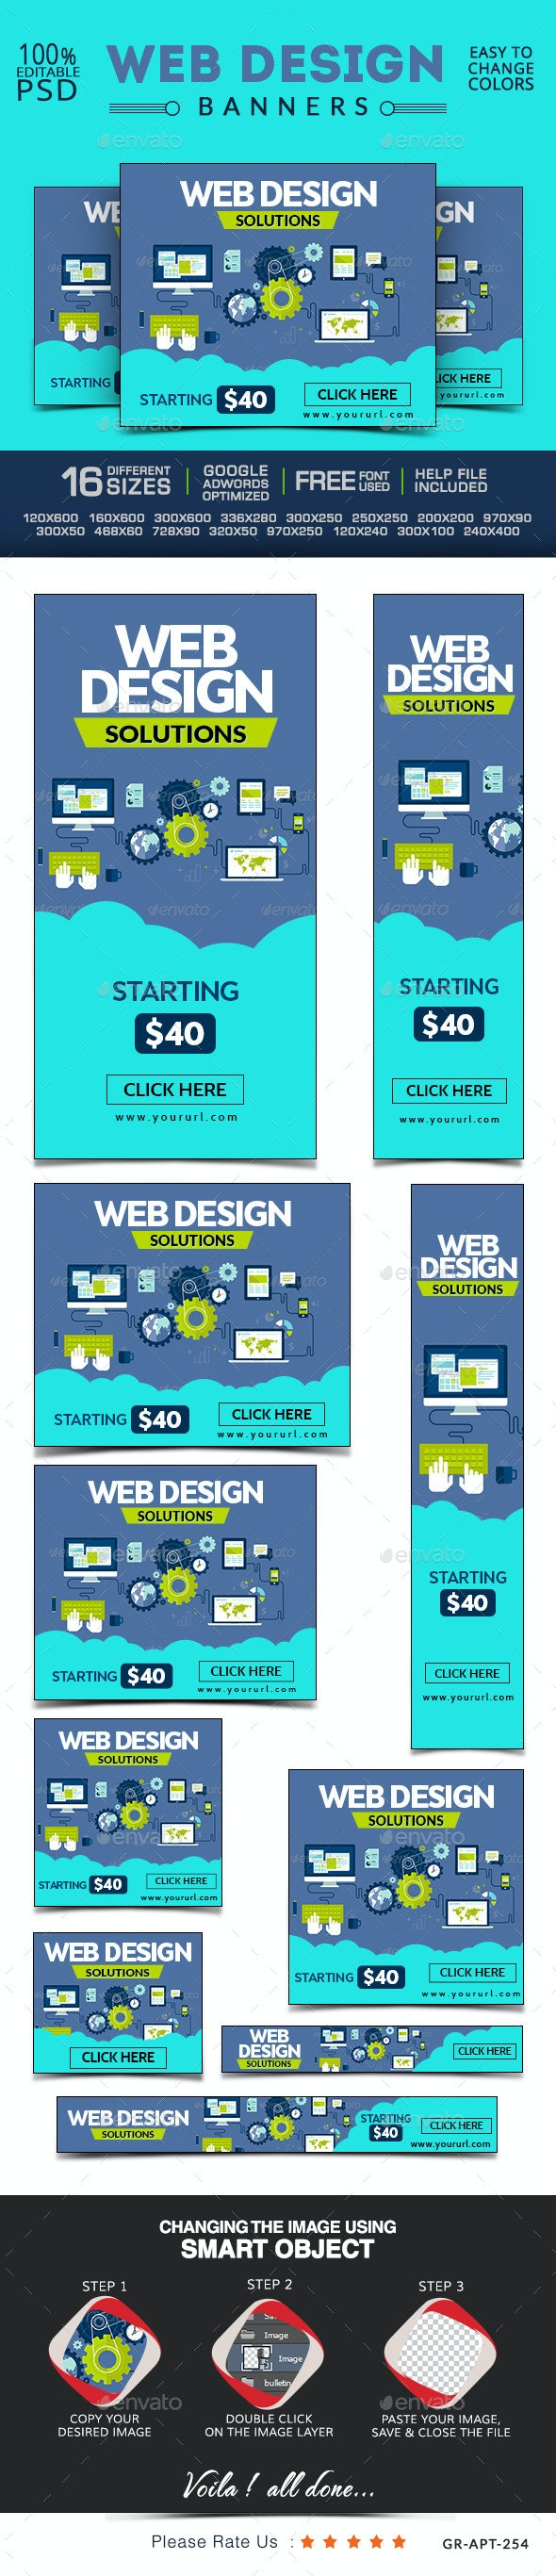 Web Design Company Banners - Banners & Ads Web Elements